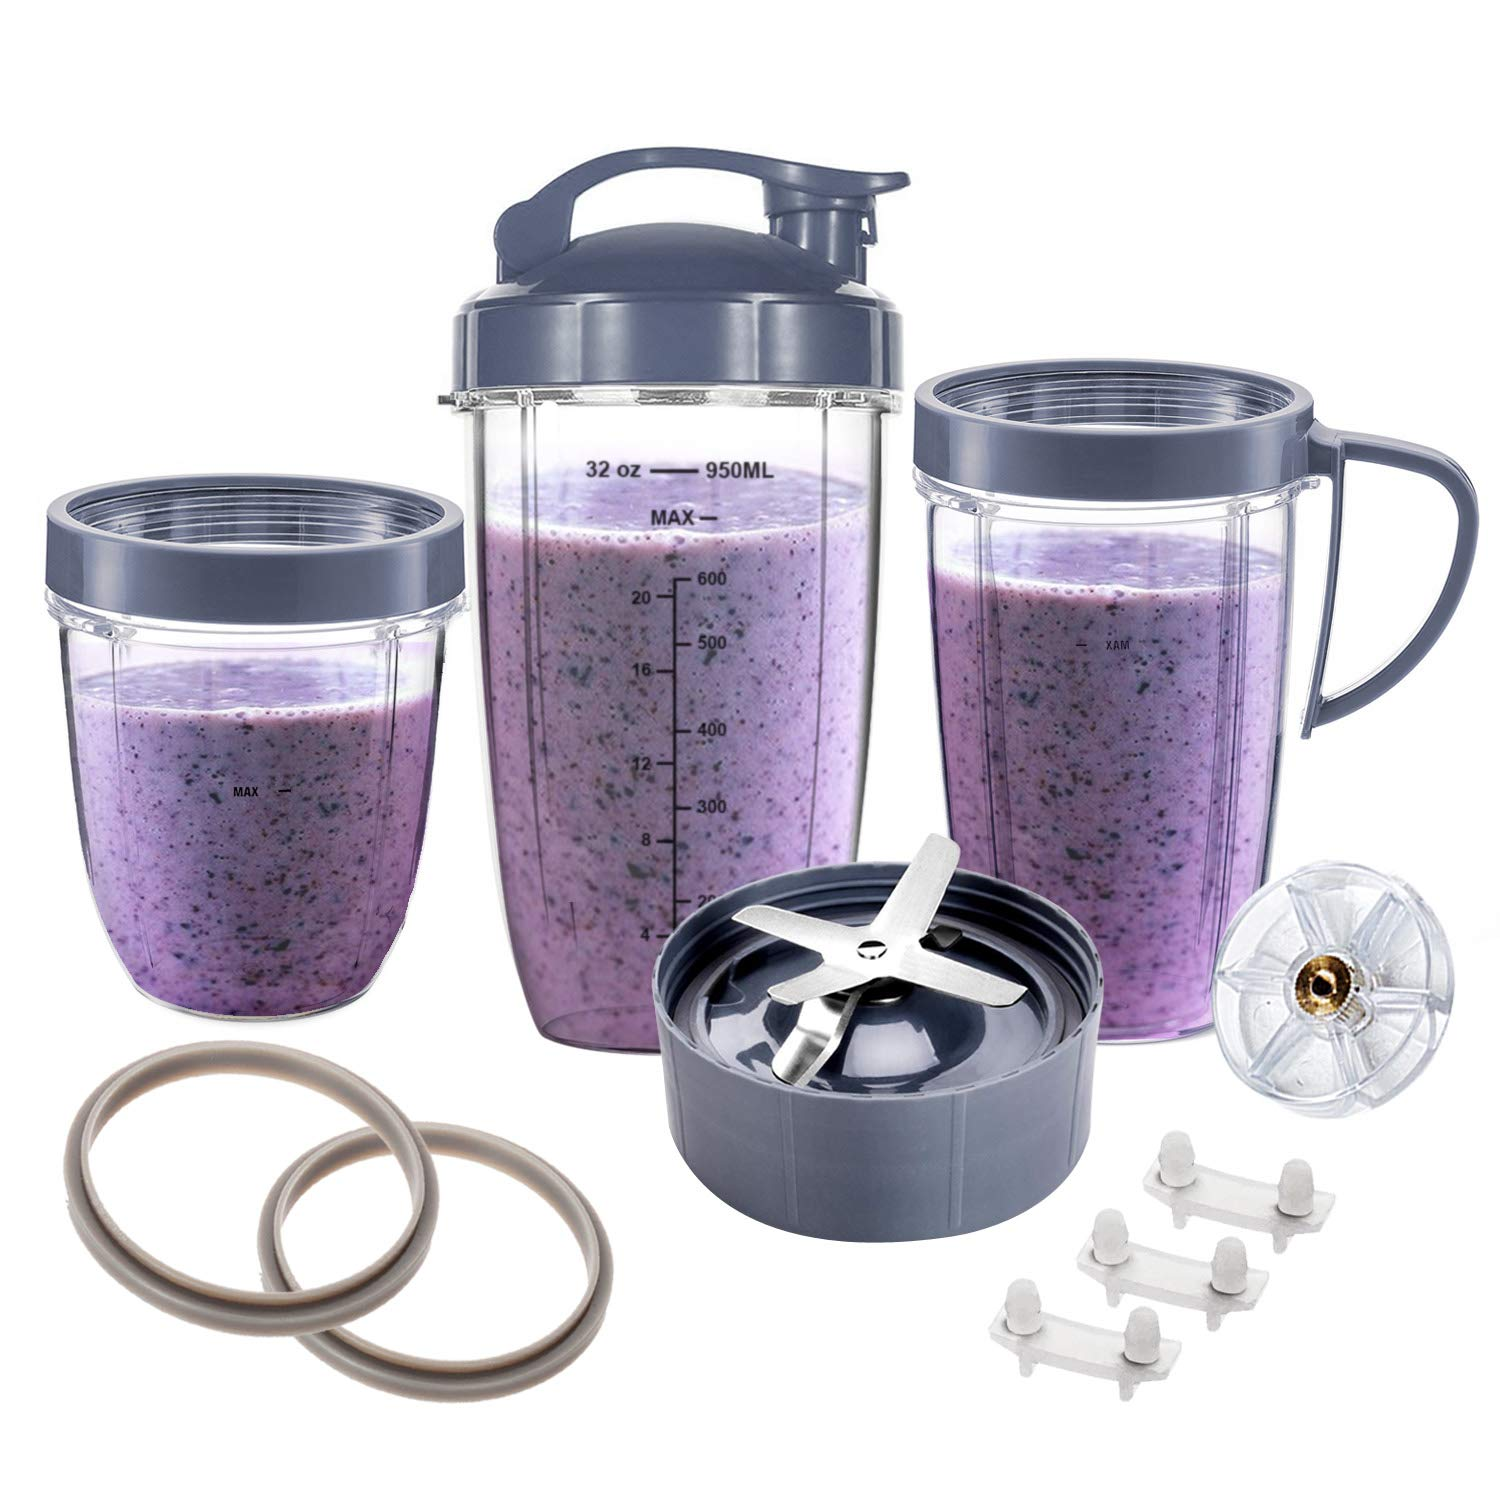 ELEFOCUS 13 Pieces Replacement Set for NutriBullet Cup 600W 900W Series - Included Cups & Blade &Top Gear & Gaskets & Shock Pad Replacement - Perfect for NutriBullet High-Speed Blender/Mixer System